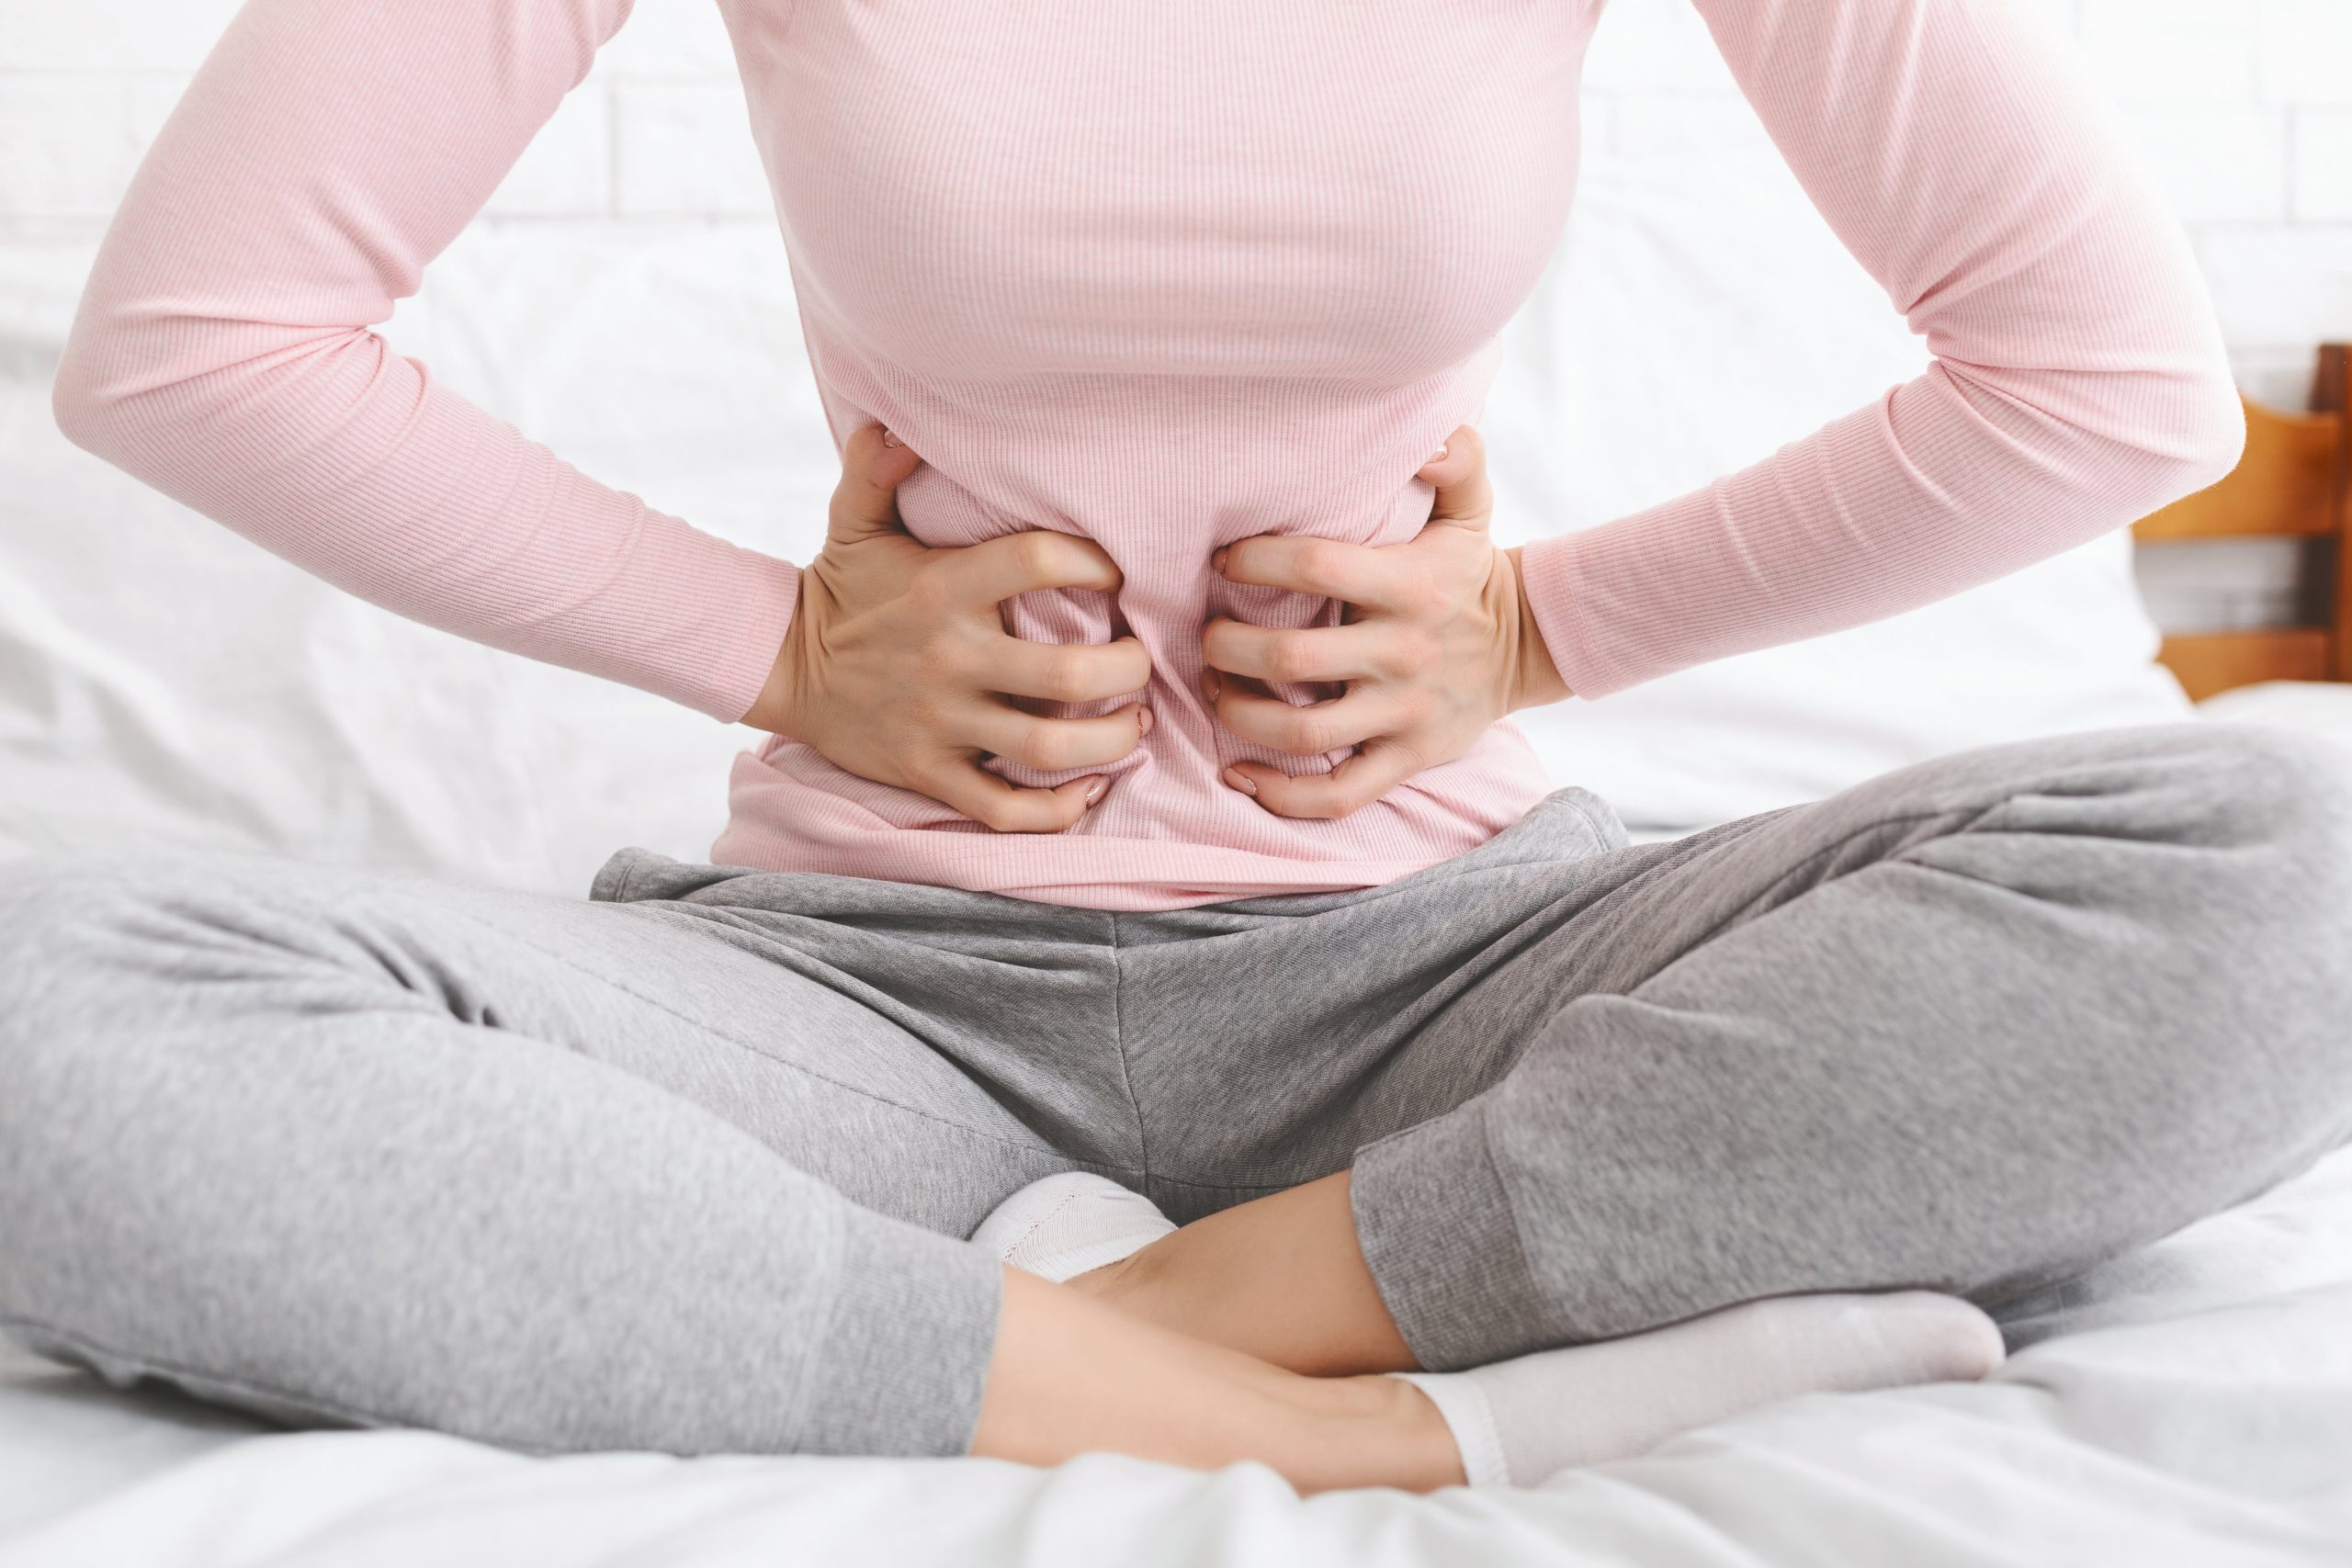 What are the Symptoms of Gastrointestinal Infection